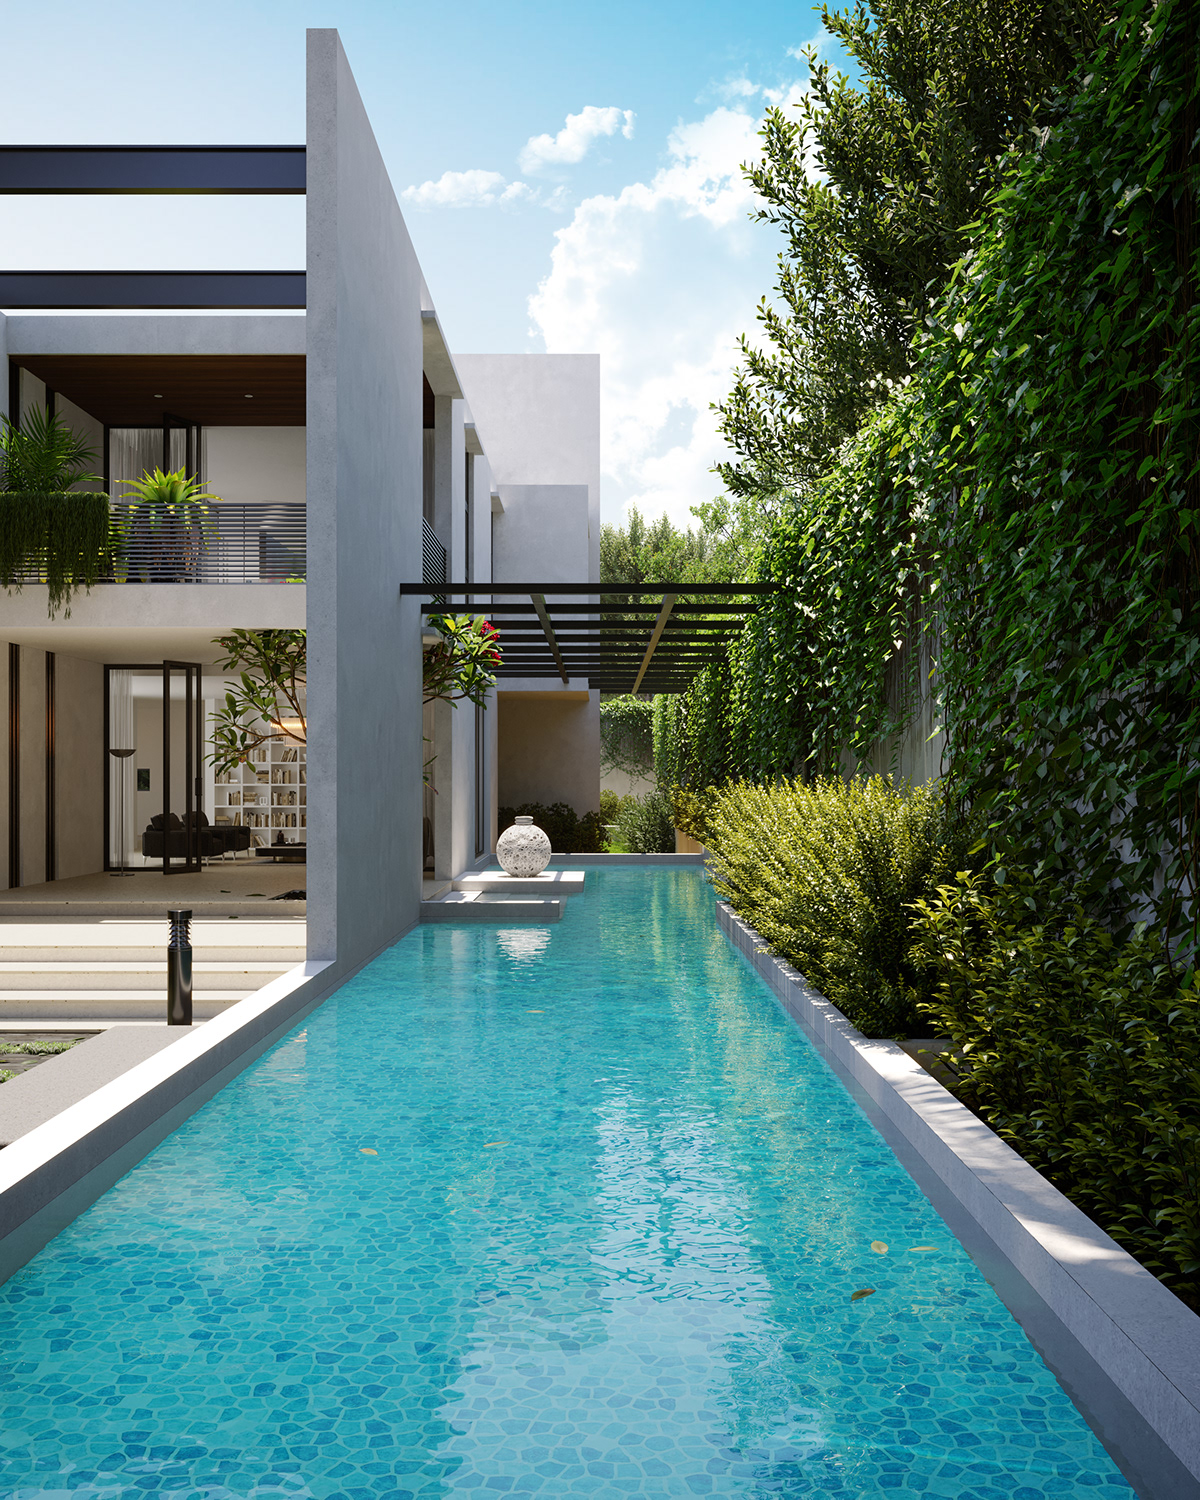 Image may contain: swimming pool, tree and outdoor